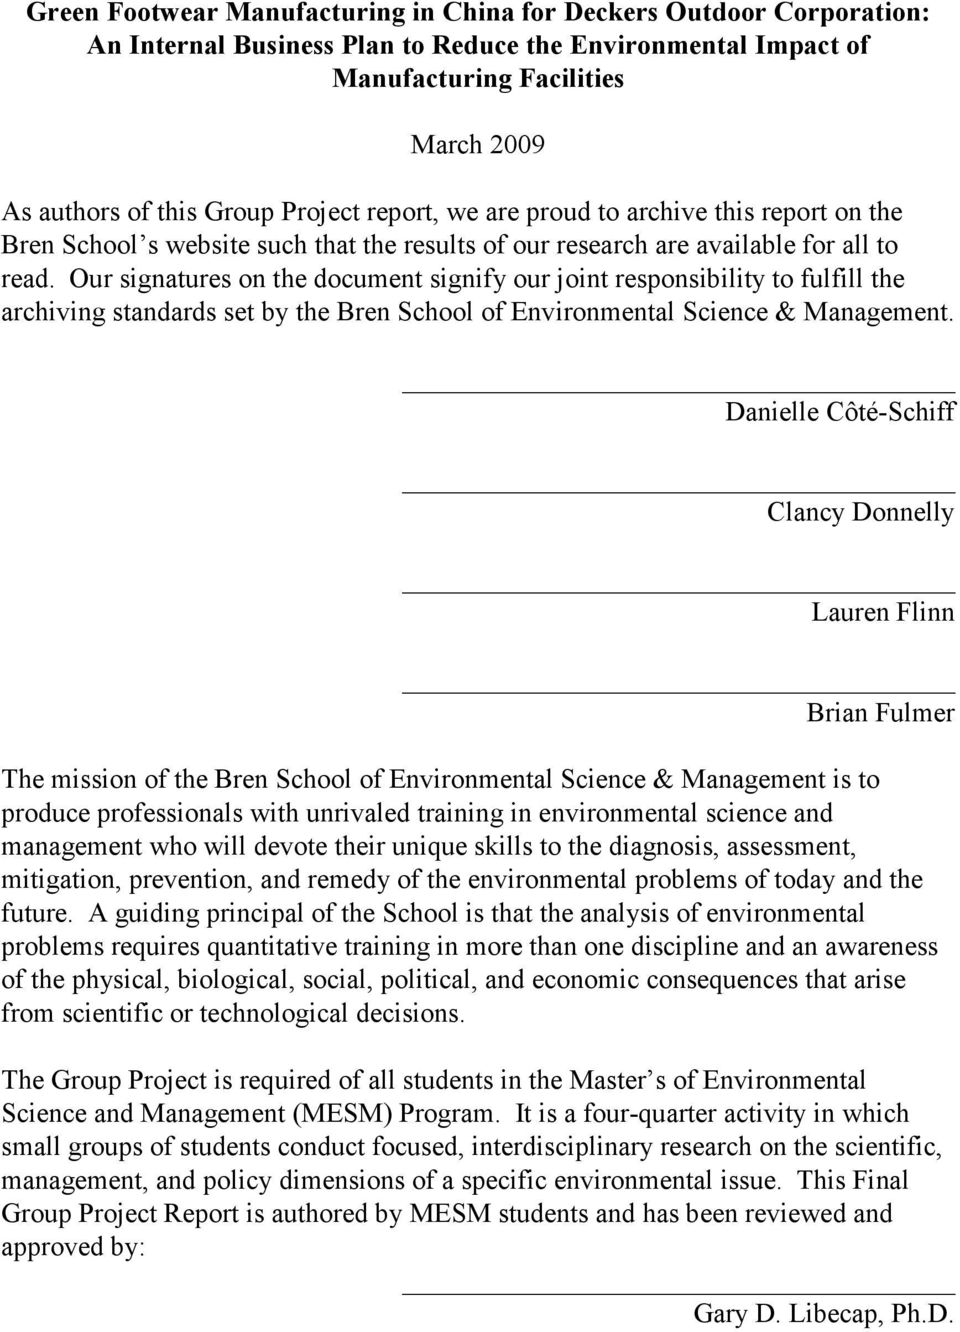 Our signatures on the document signify our joint responsibility to fulfill the archiving standards set by the Bren School of Environmental Science & Management.